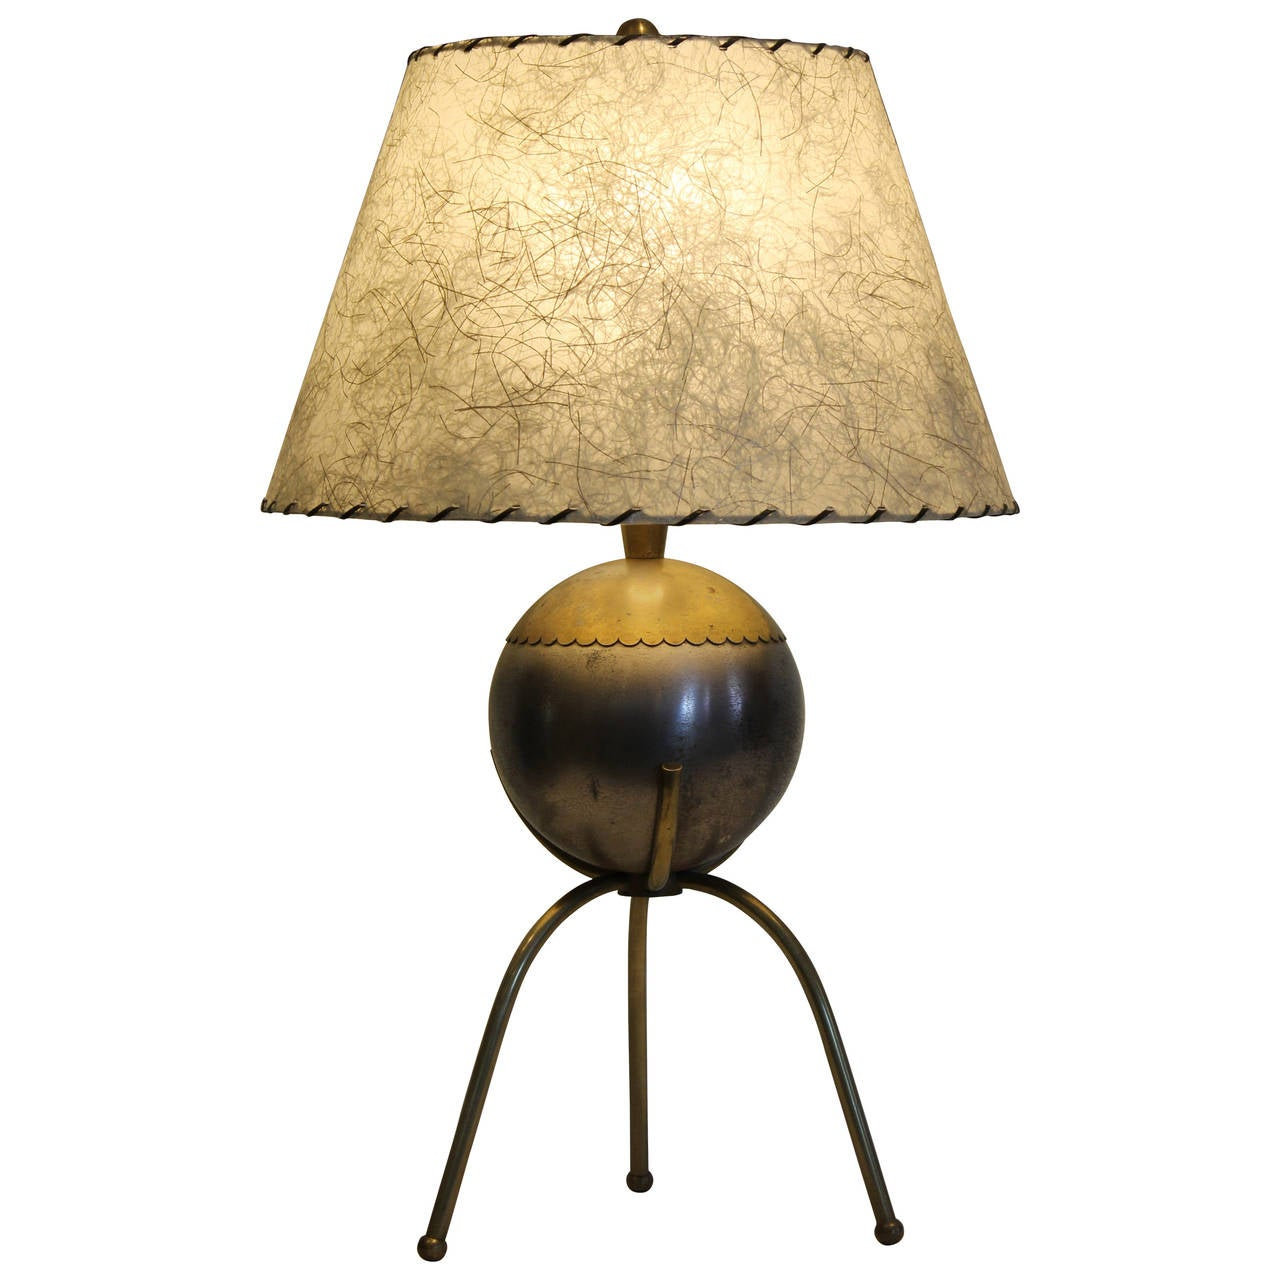 ball and tripod table lamp with original shade at 1stdibs